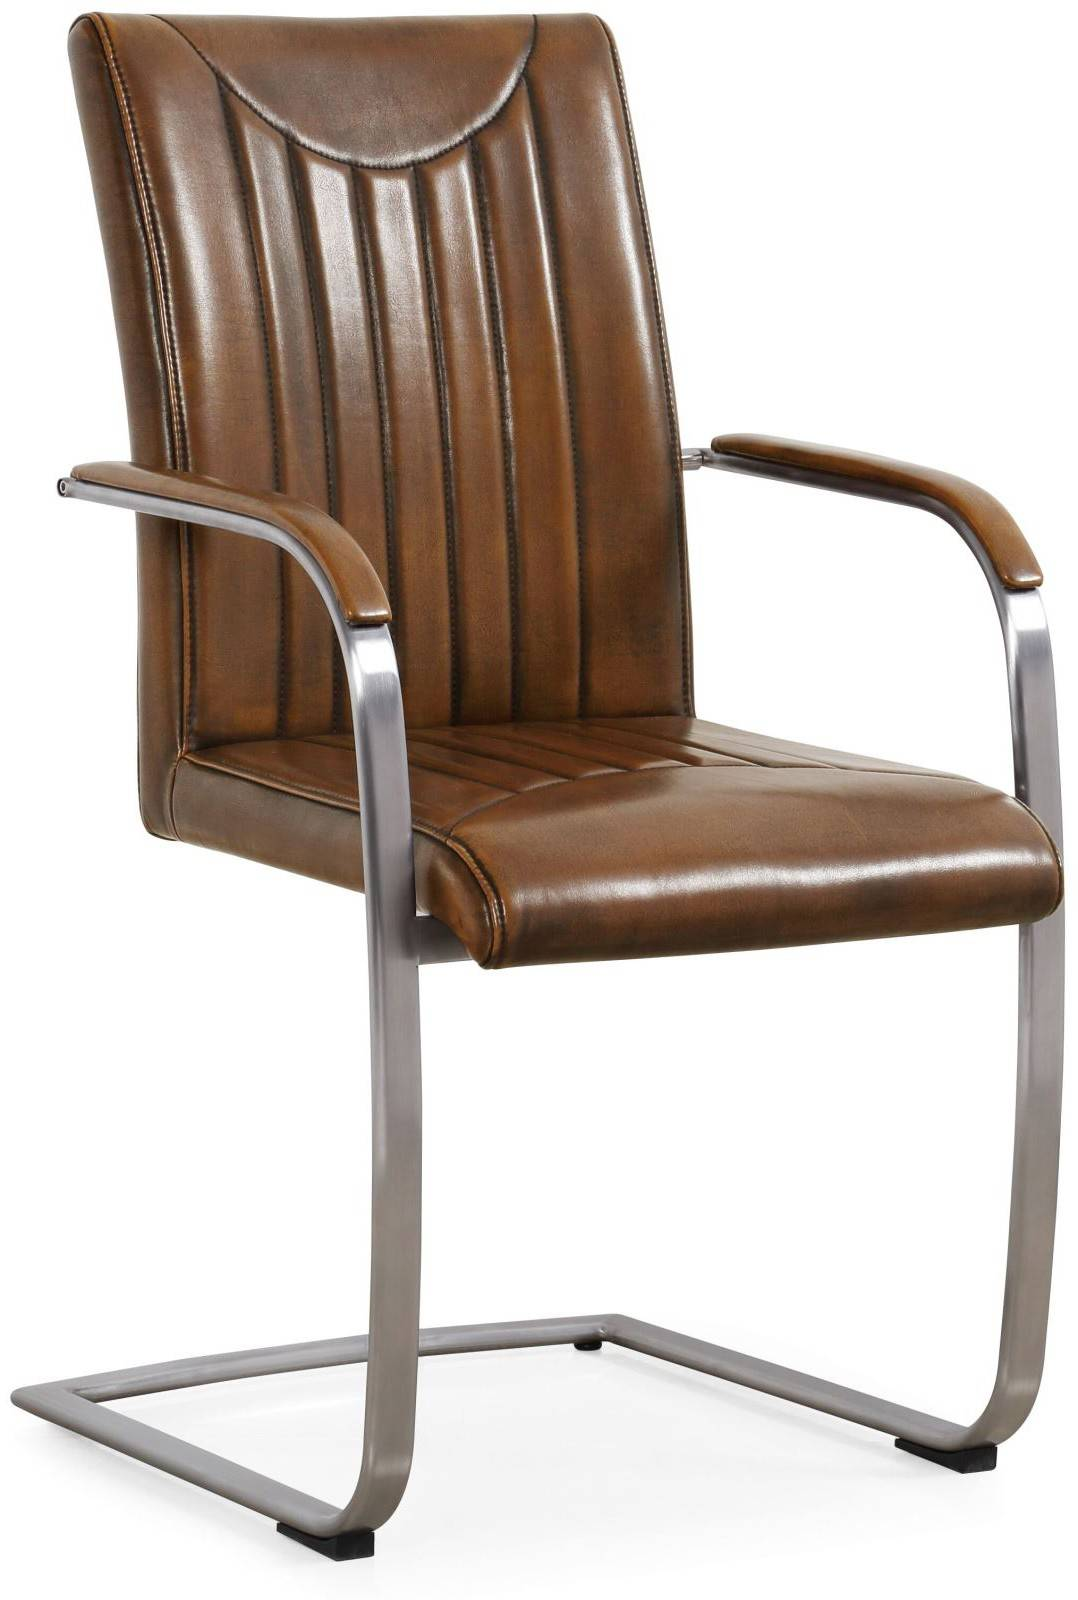 Urban Dining Chair With Arms Retro Stitch Dining Chairs